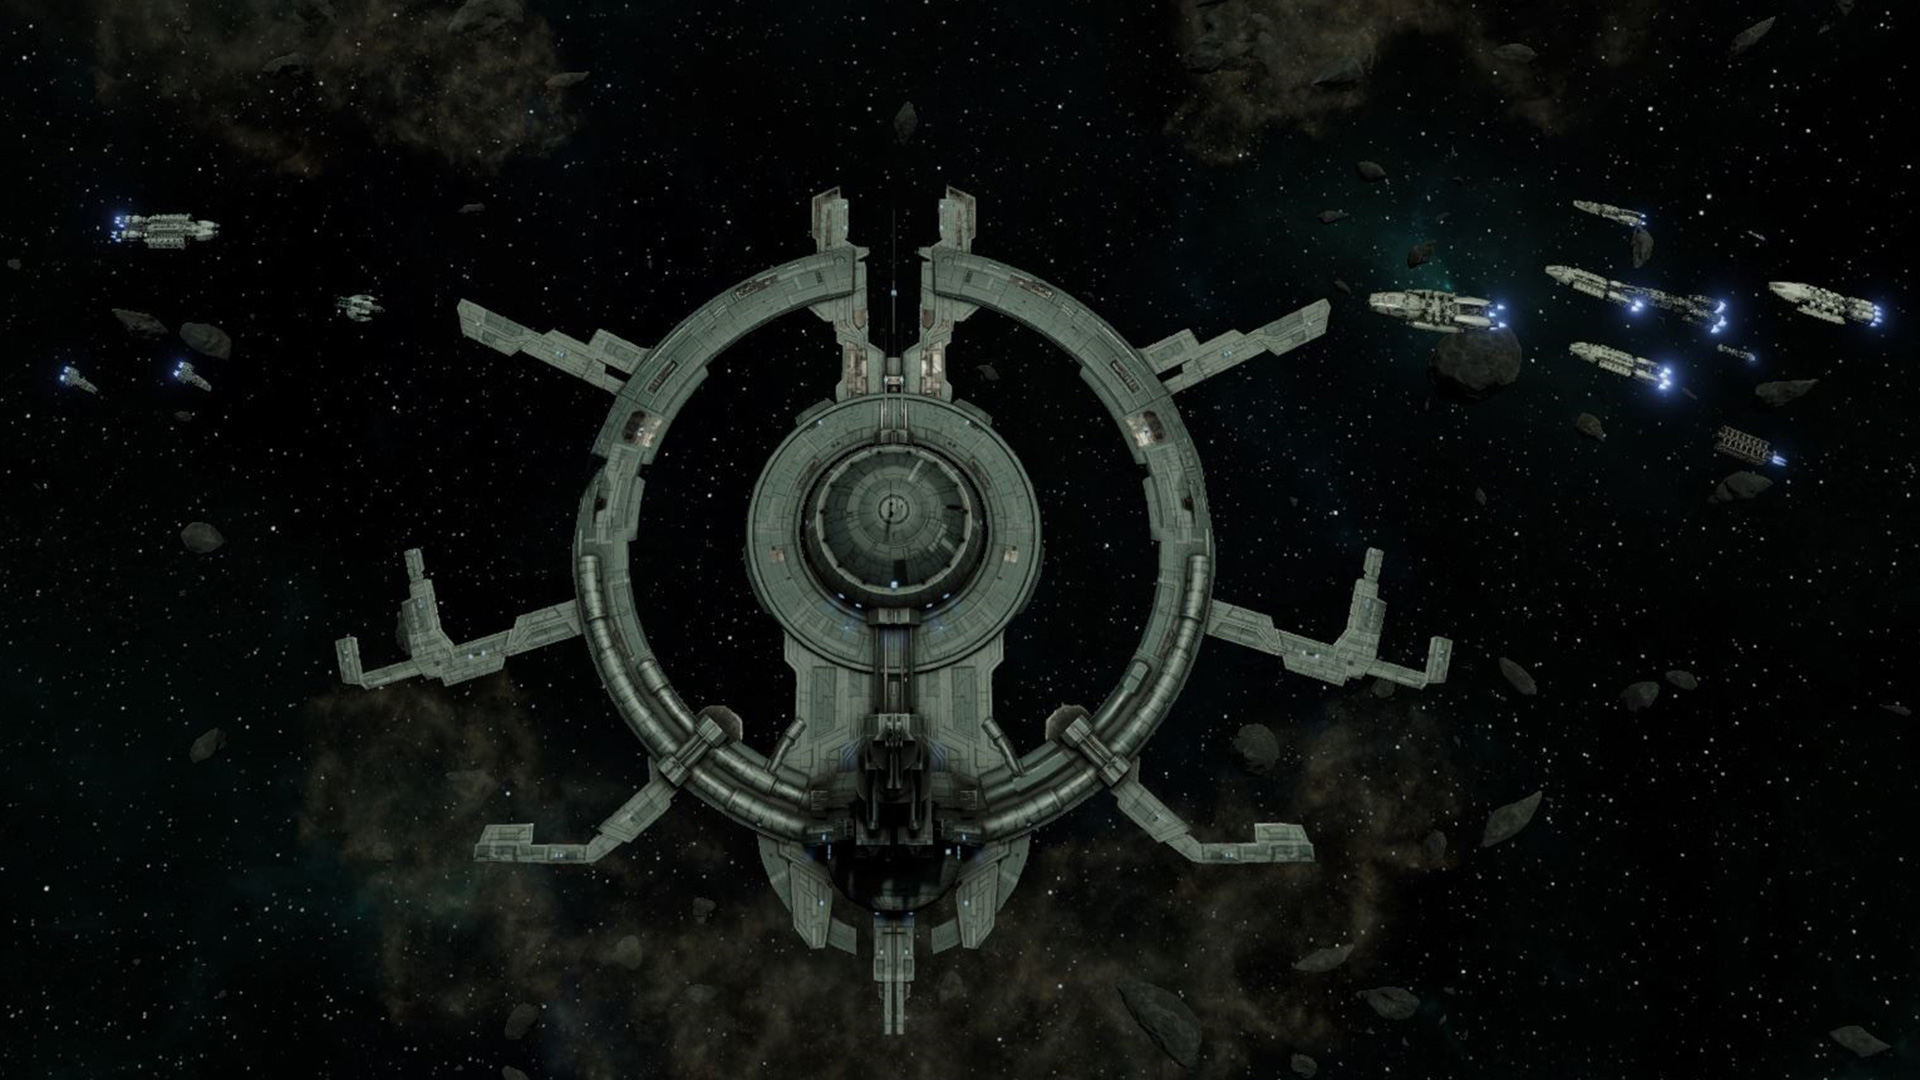 In Battlestar Galactica Deadlock you'll take command of the Colonial Fleet in defense of the Twelve Colonies during the First Cylon War. Lead many different types of ships in this 3D tactical game.